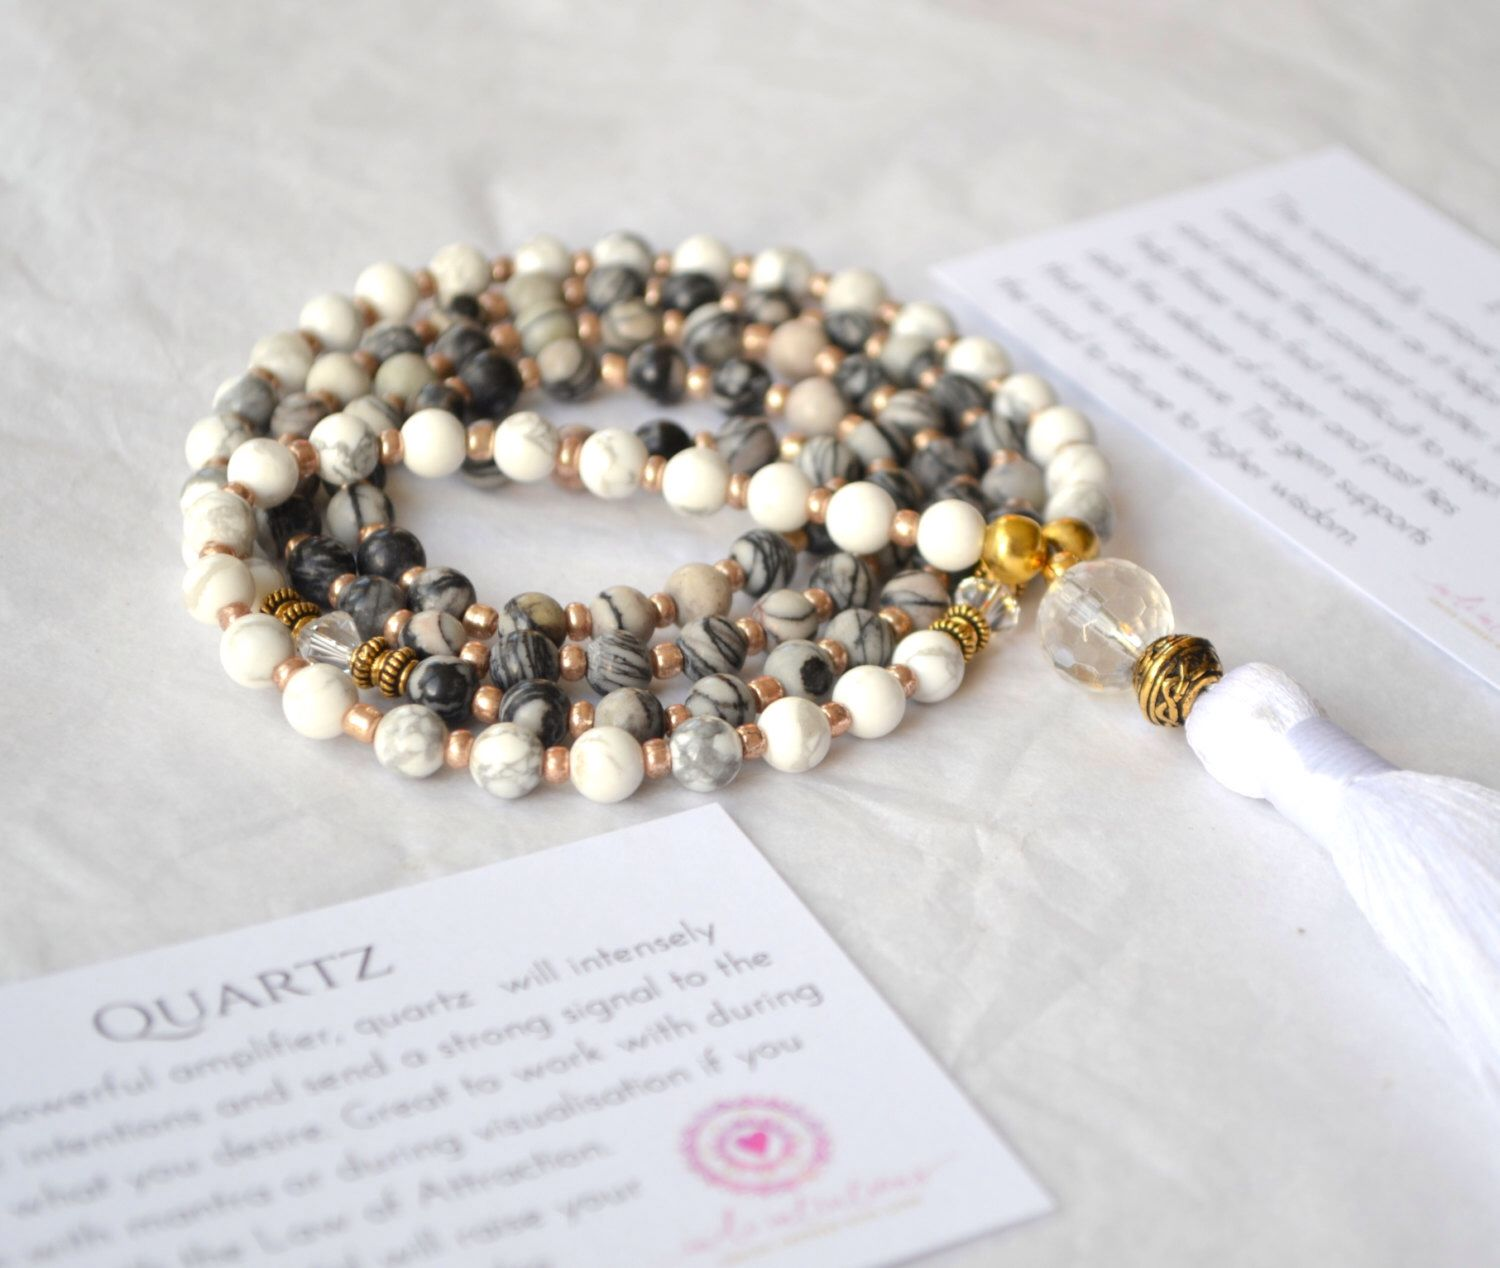 This is so gorgeous!!! Jasper, Howlite and Quartz 108 Mala Beads. Etsy shop https://www.etsy.com/ie/listing/264958399/meditation-beads-mantra-necklace-long